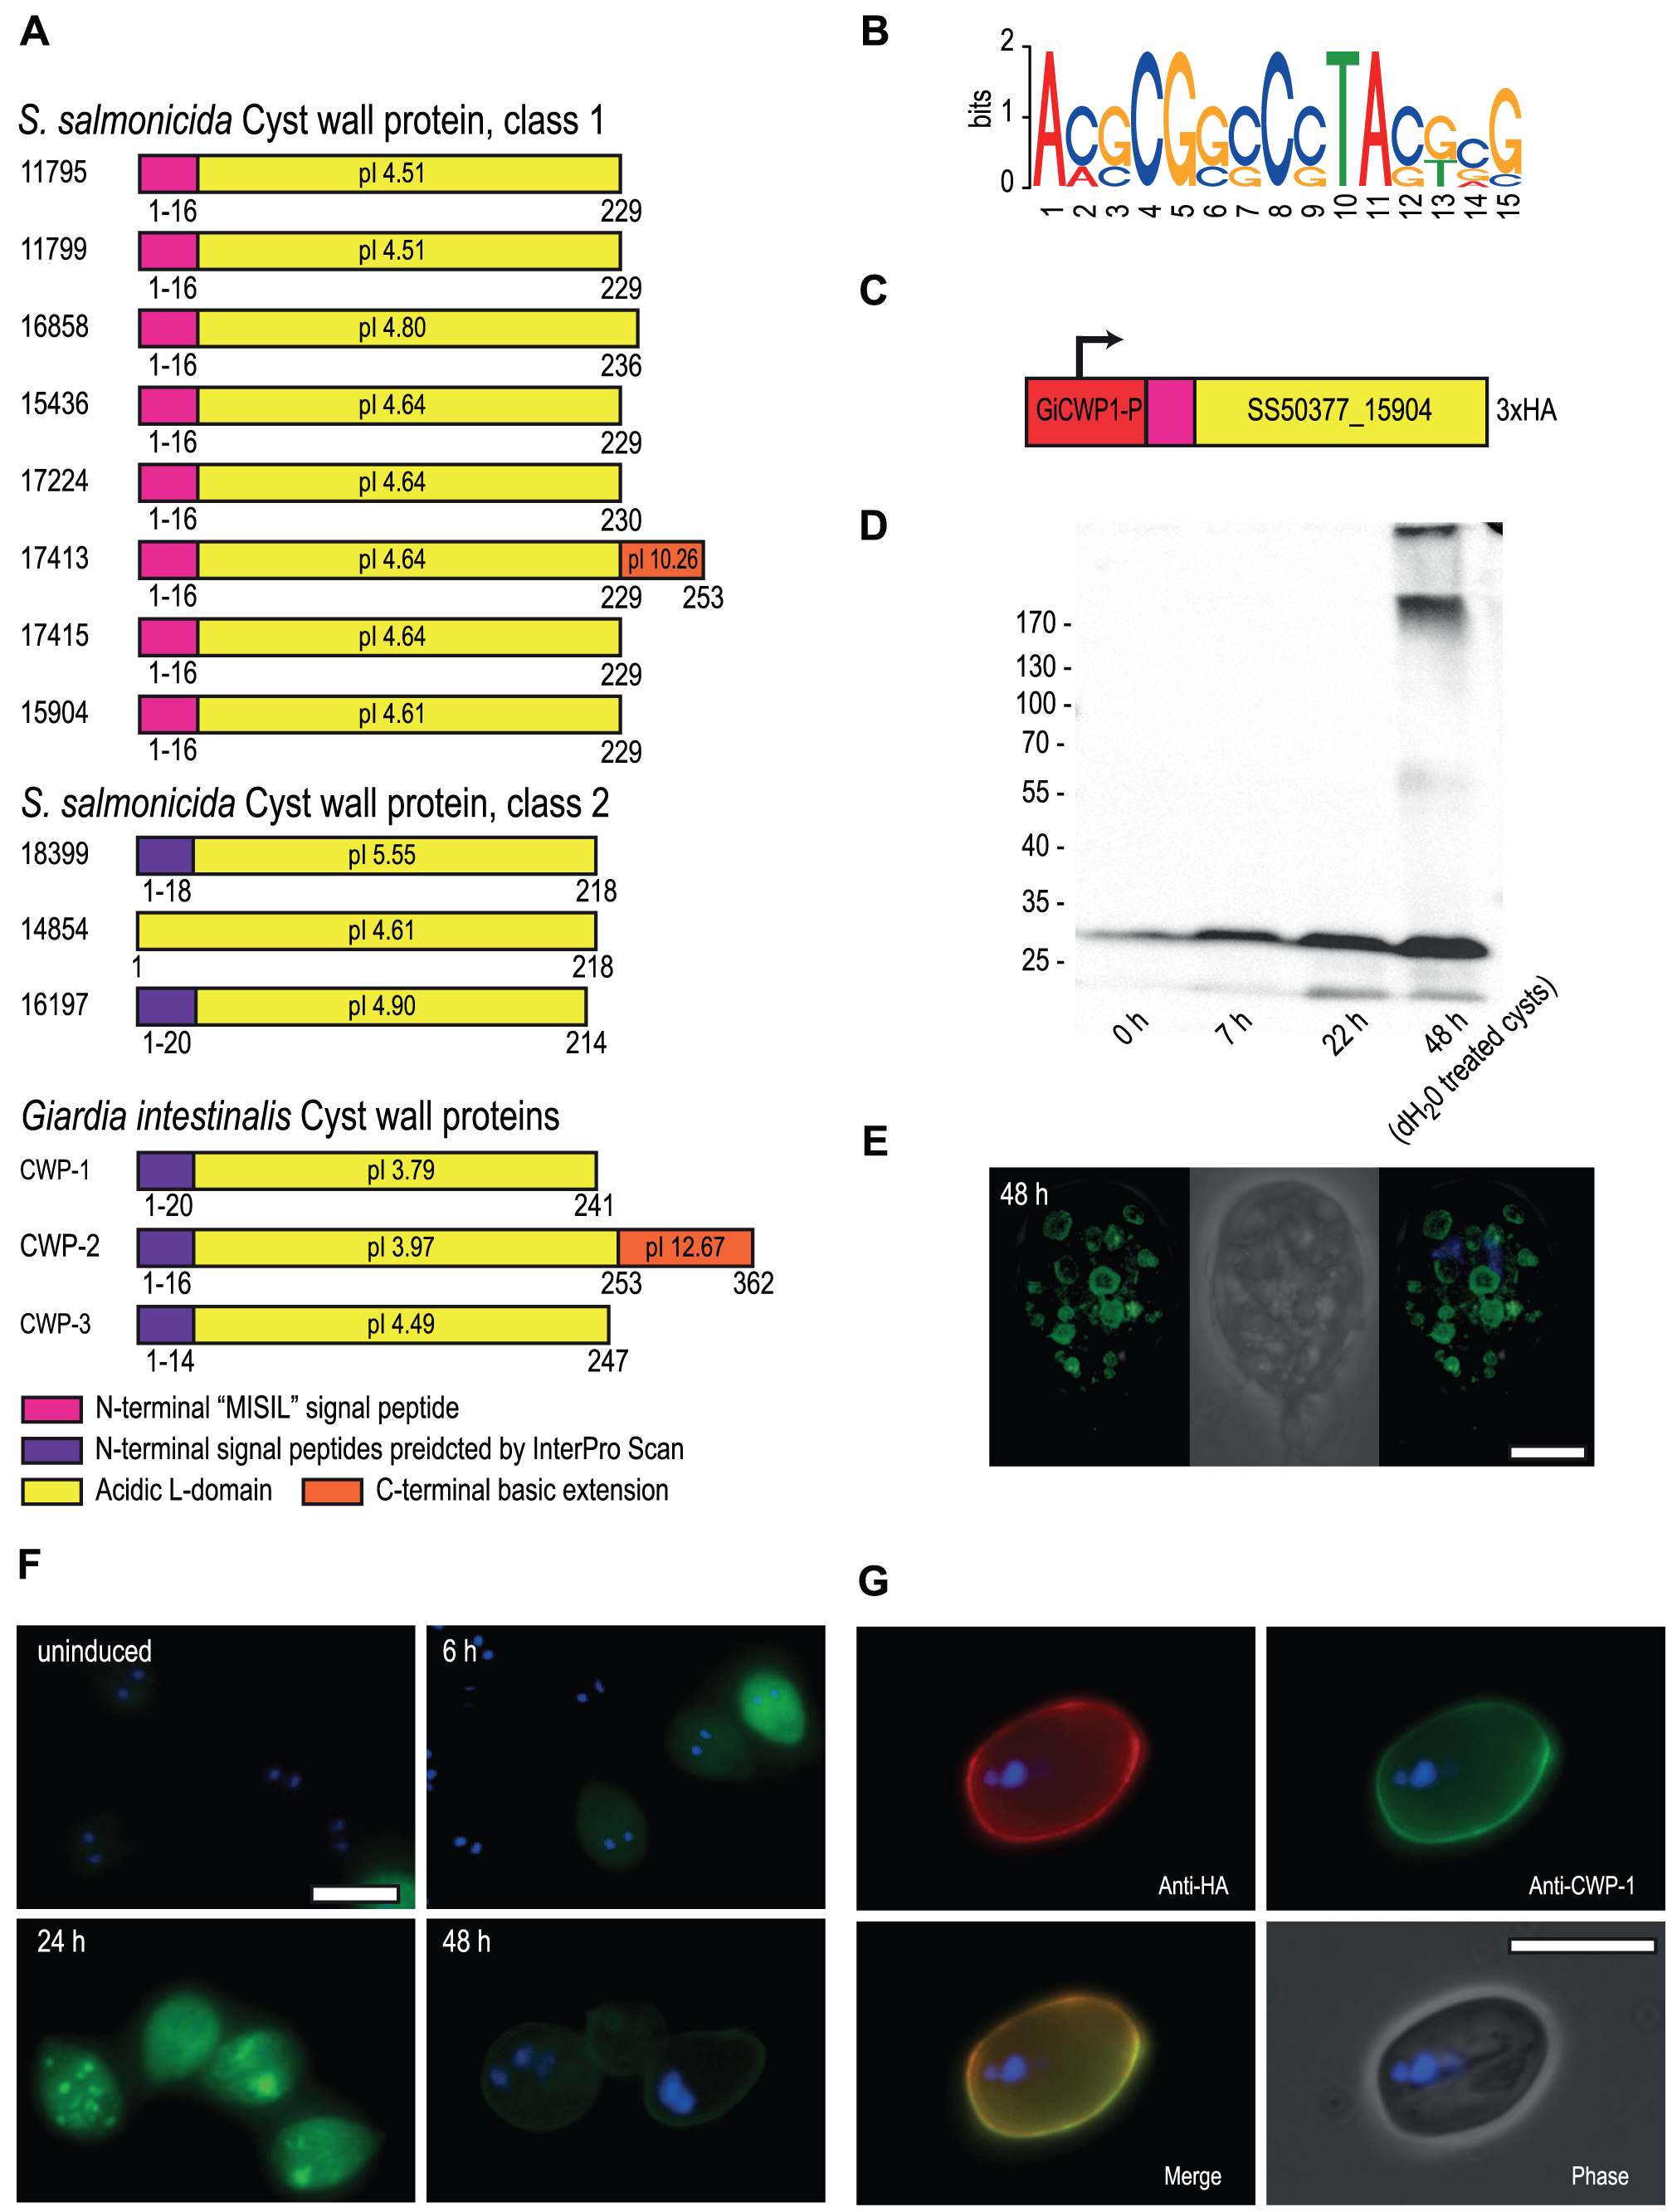 <i>S. salmonicida</i> cyst wall proteins traffic in <i>G. intestinalis</i> ESVs and incorporate into the cyst wall.